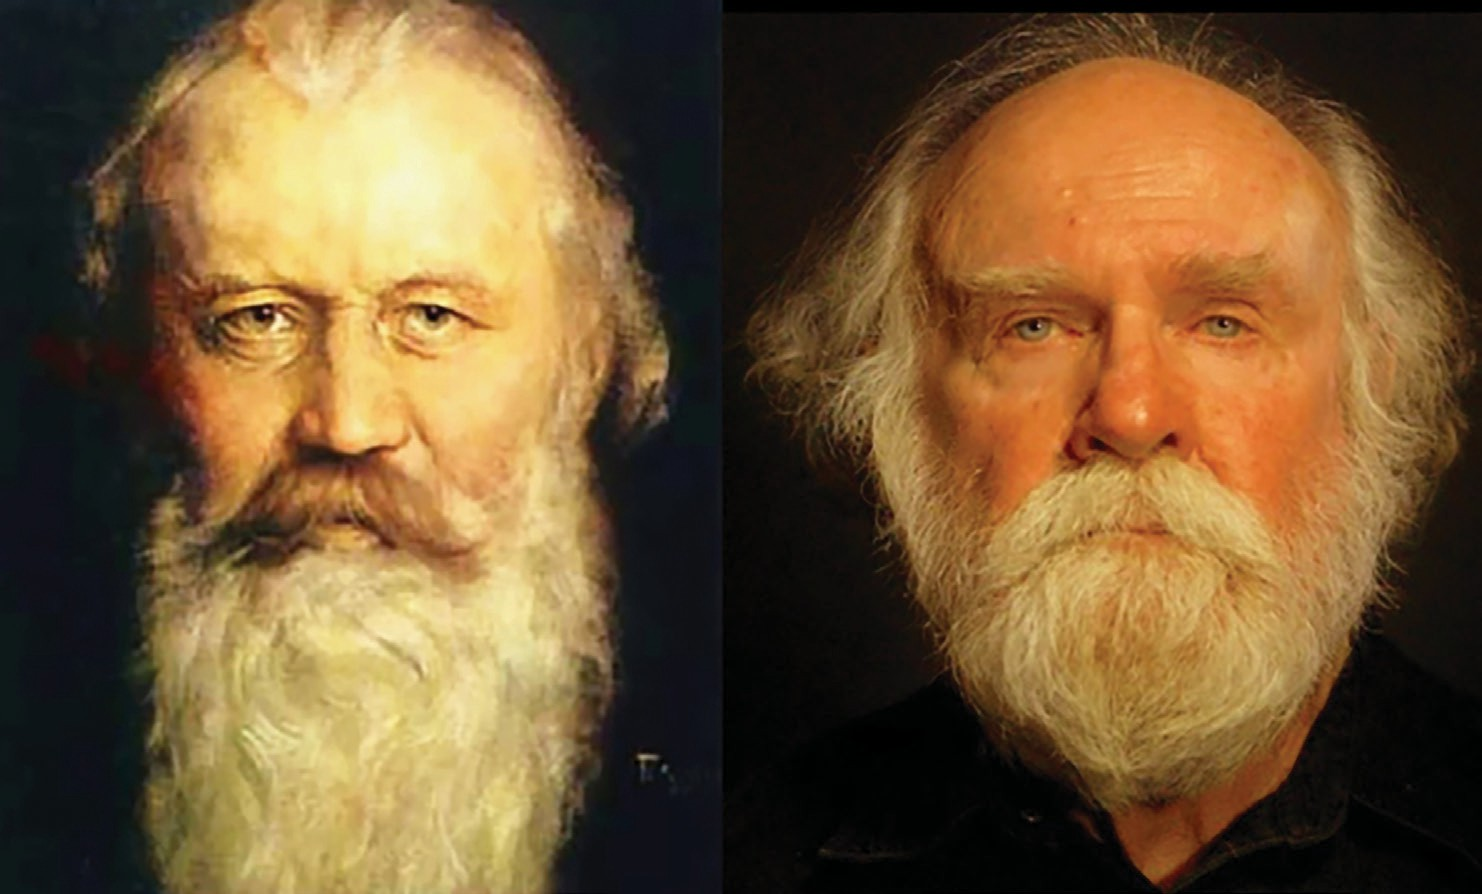 Which one of these men is Johannes Brahms? The other one is a local conductor who will be leading a performance of Brahms's famous German Requiem at California Center for the Arts, Escondido on January 29. The conductor has been an admirer of Brahms works for so long that maybe he begins to look like him?